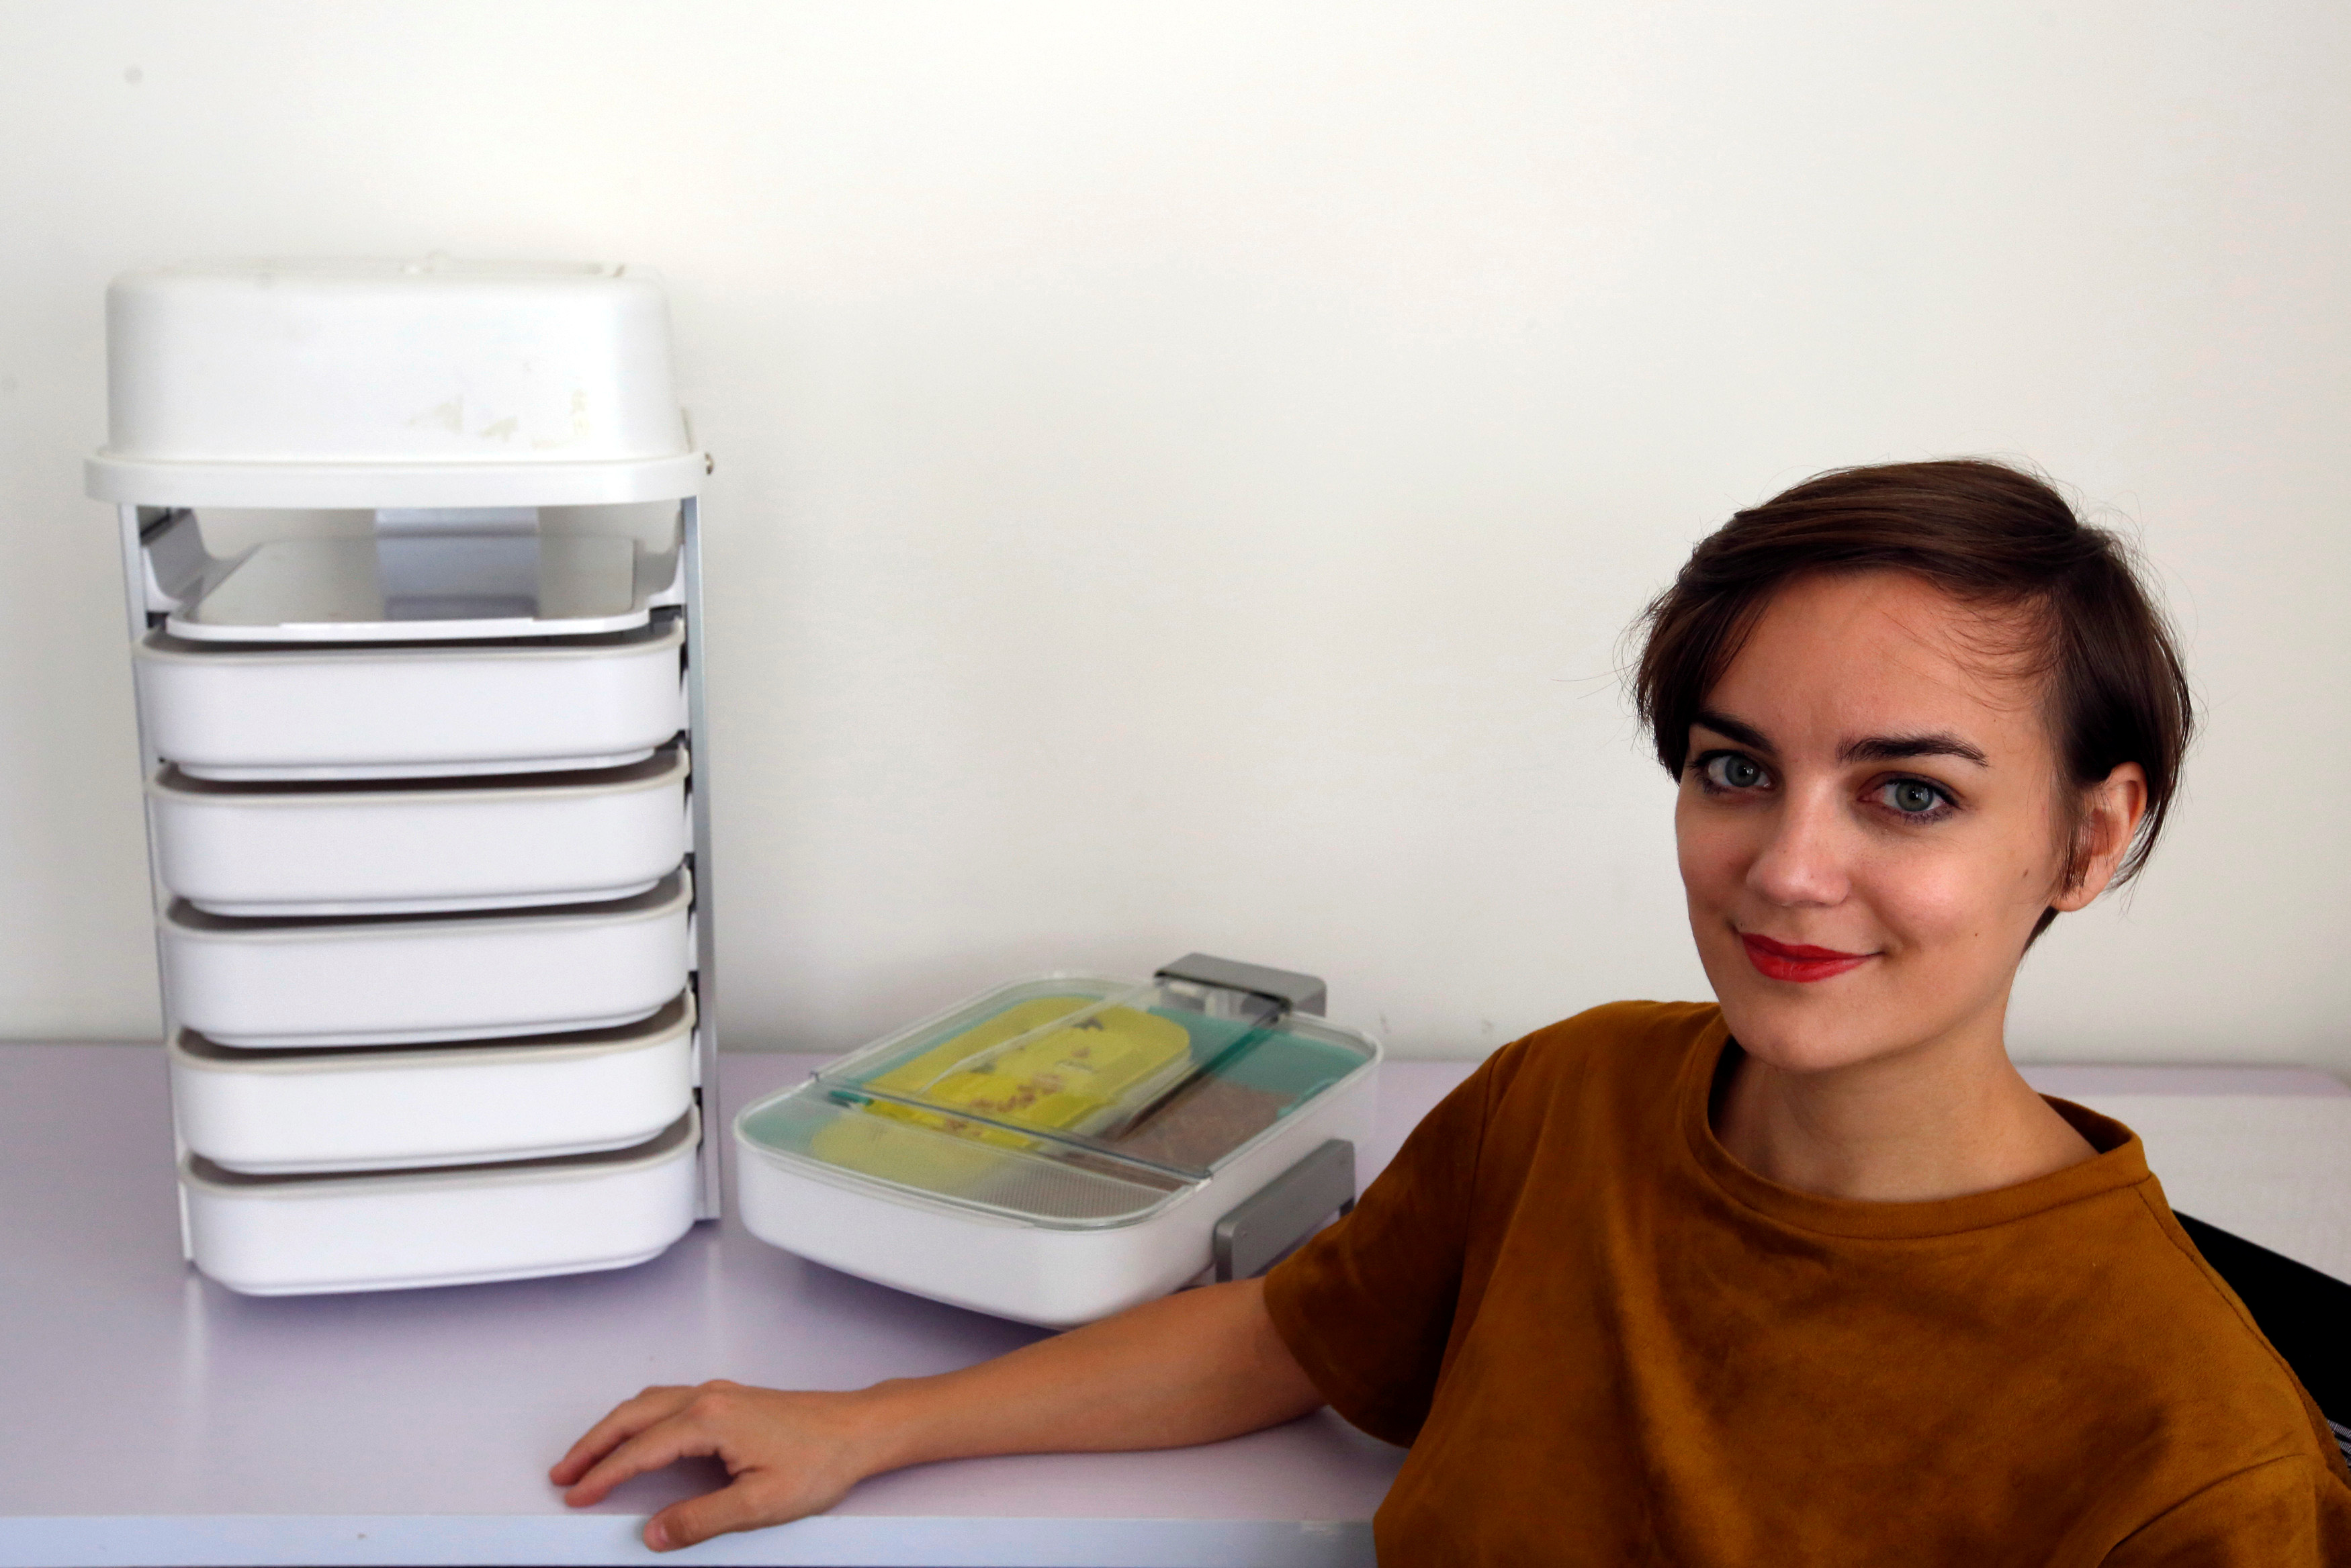 Katharina Unger, founder and CEO of Livin Farms, poses with her mealworm incubators in Hong Kong, China